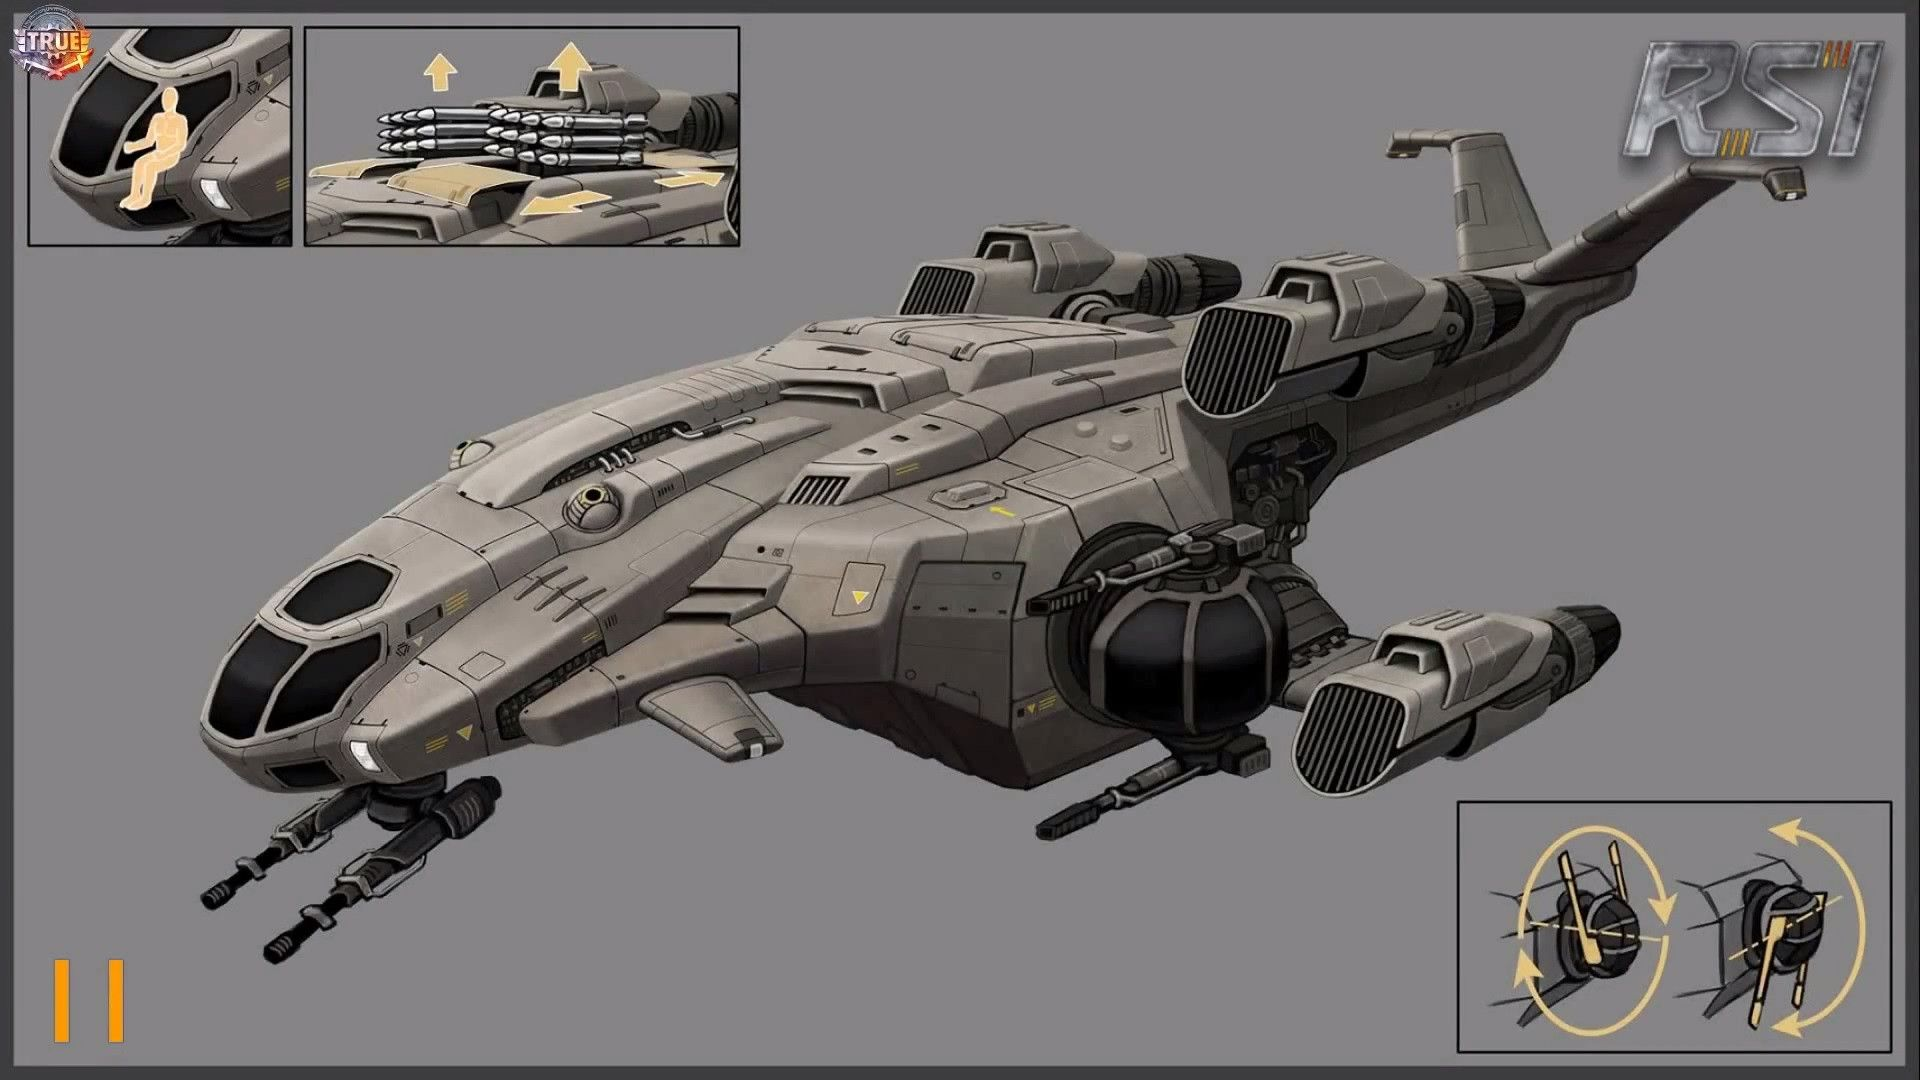 helicopter gunship concept art - Google Search | Mecha ...